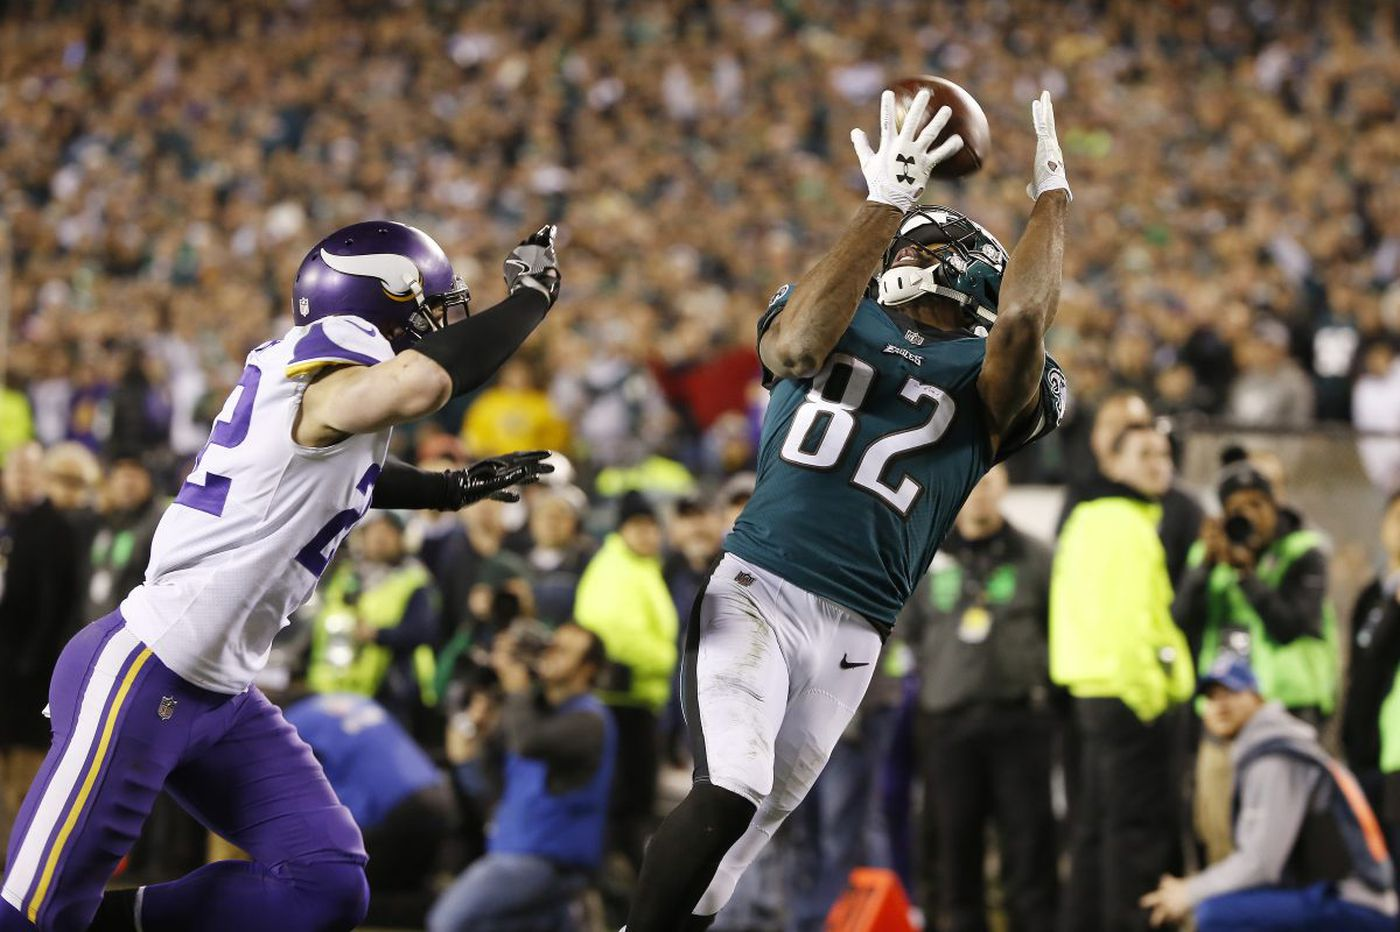 Eagles 38, Vikings 7 - the Eagles' Super Bowl berth-clinching win as it happened